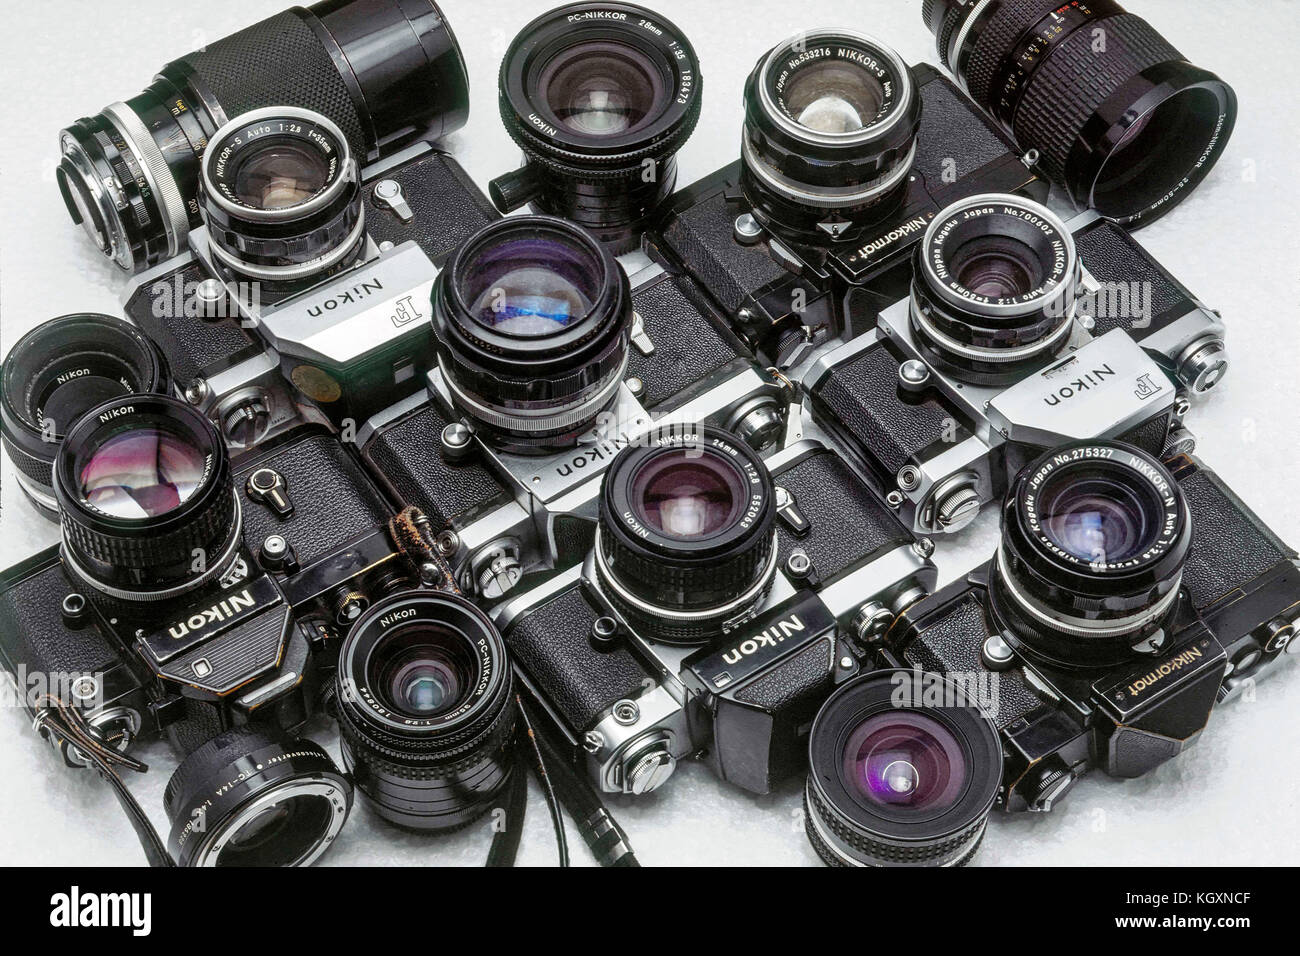 Nikon old 35mm film cameras and lenses - Stock Image